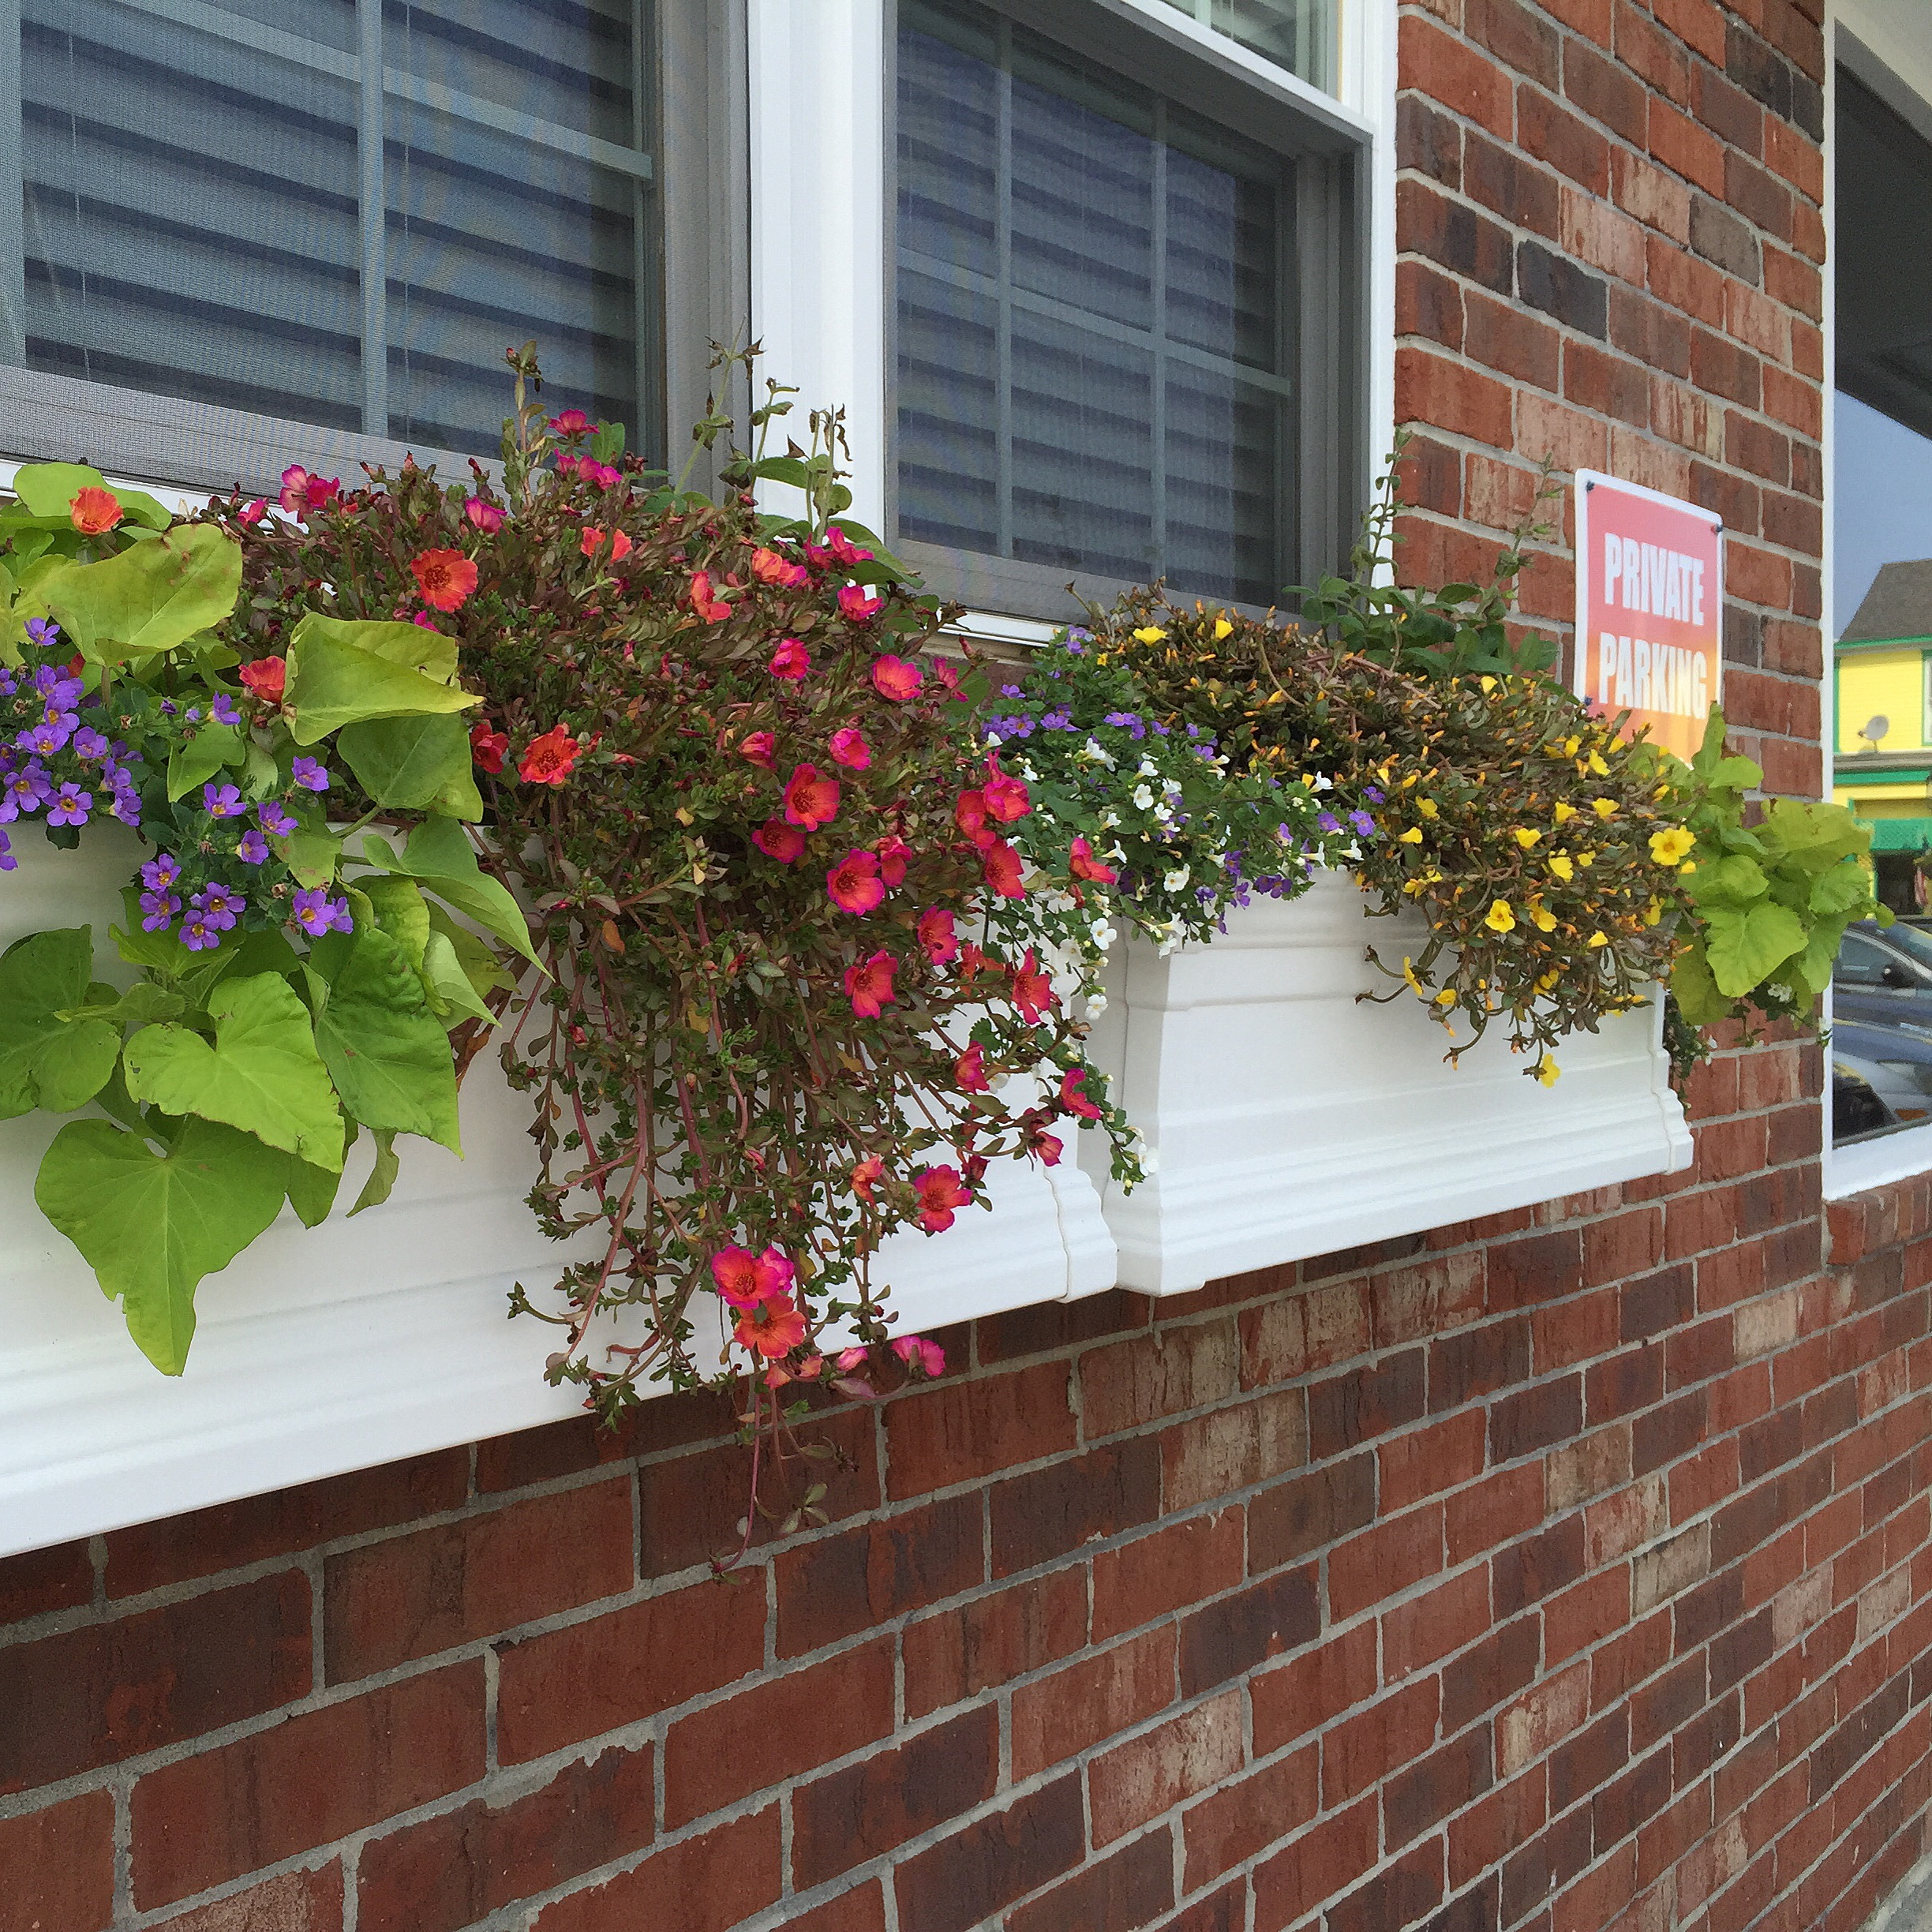 Cape May Window Boxes CookeCapeMayCookeCapeMay